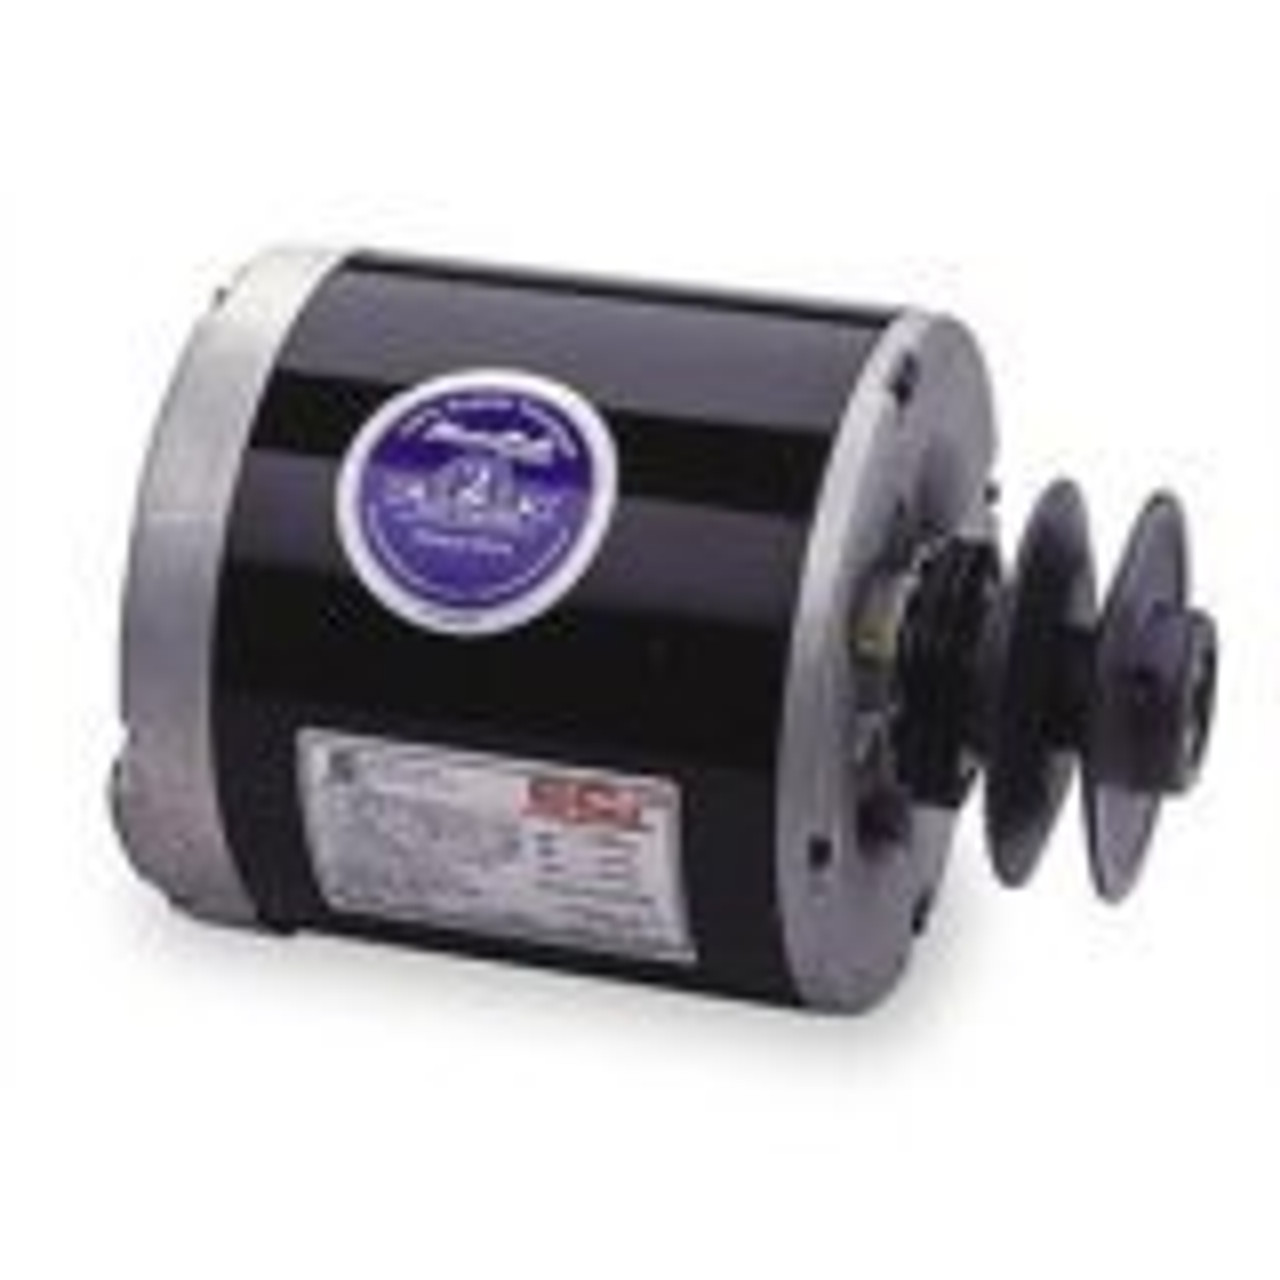 Cooler Motors - 240 Volt Motor Kits